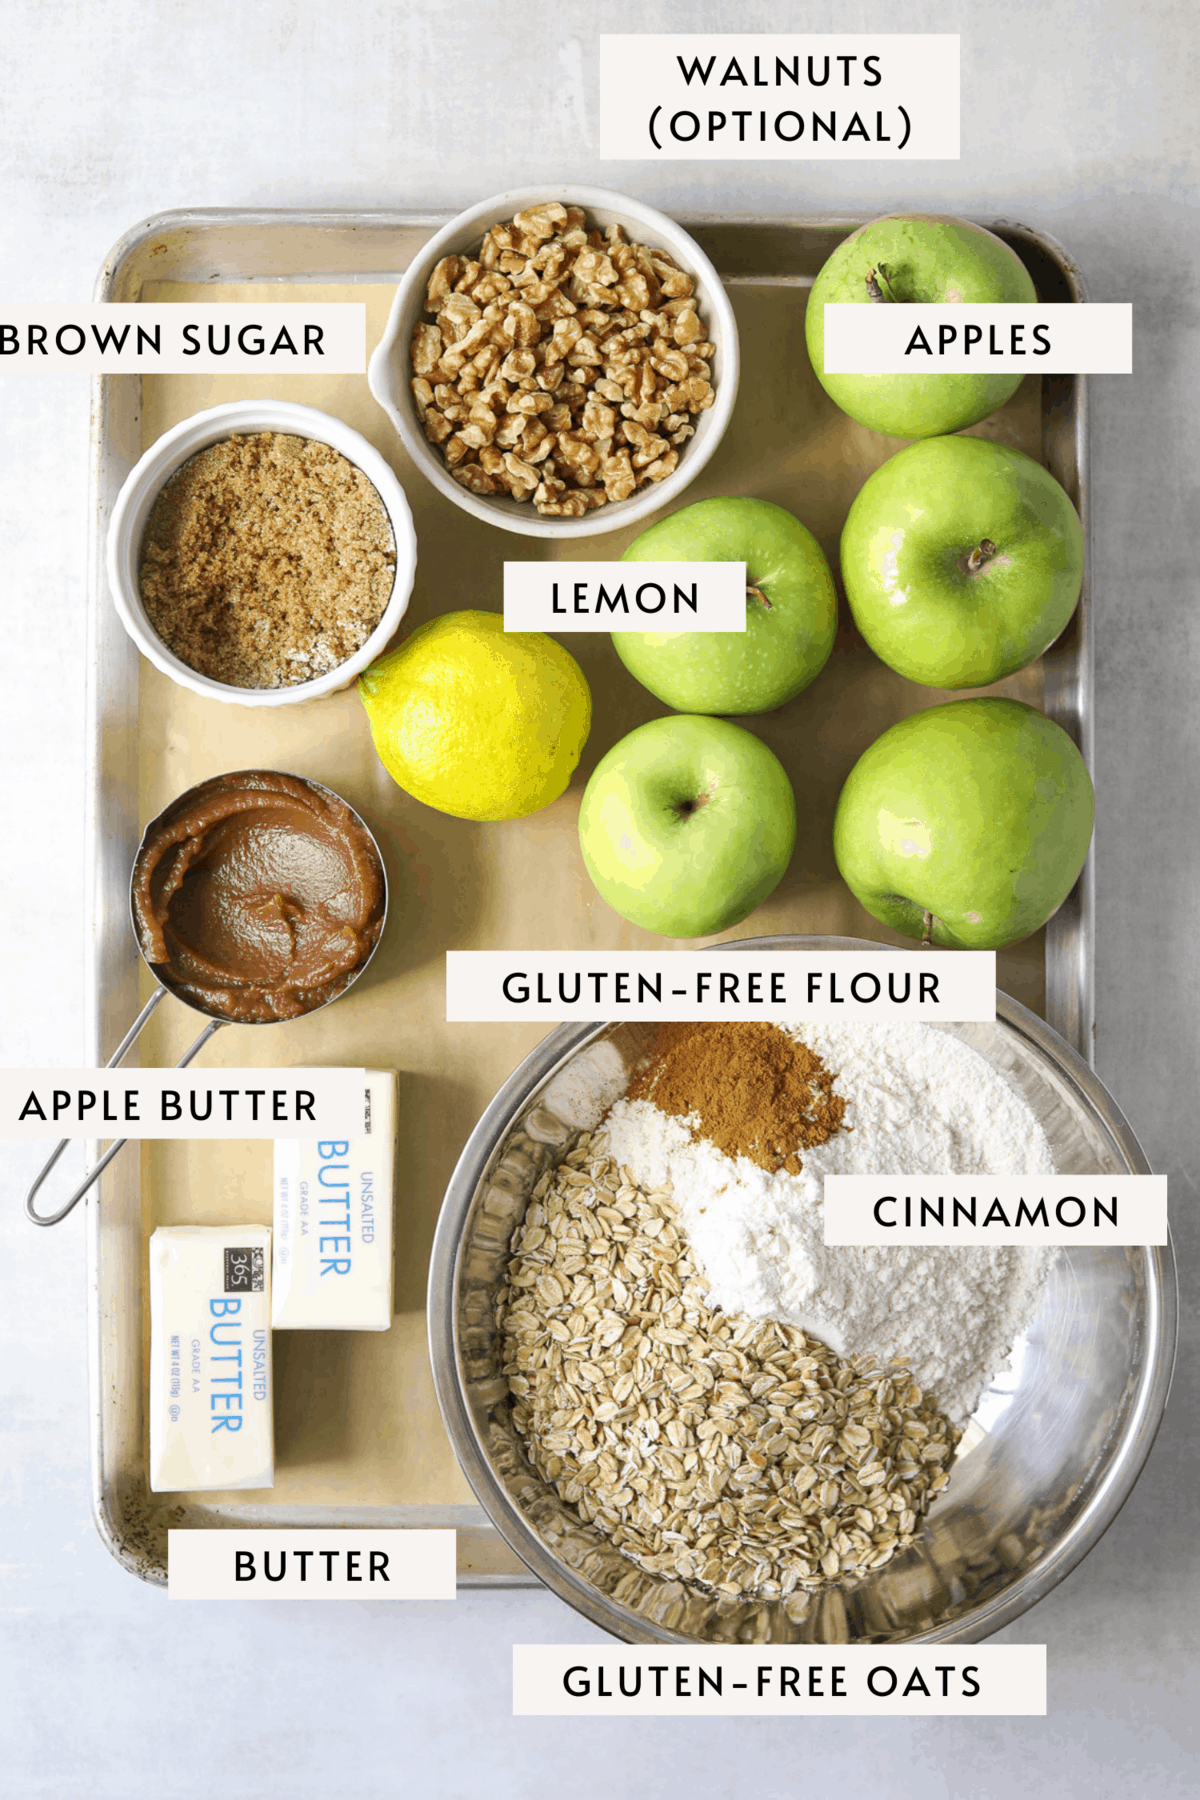 recipe ingredients on a baking tray: apples, walnuts, oats, gluten-free flour, butter etc.